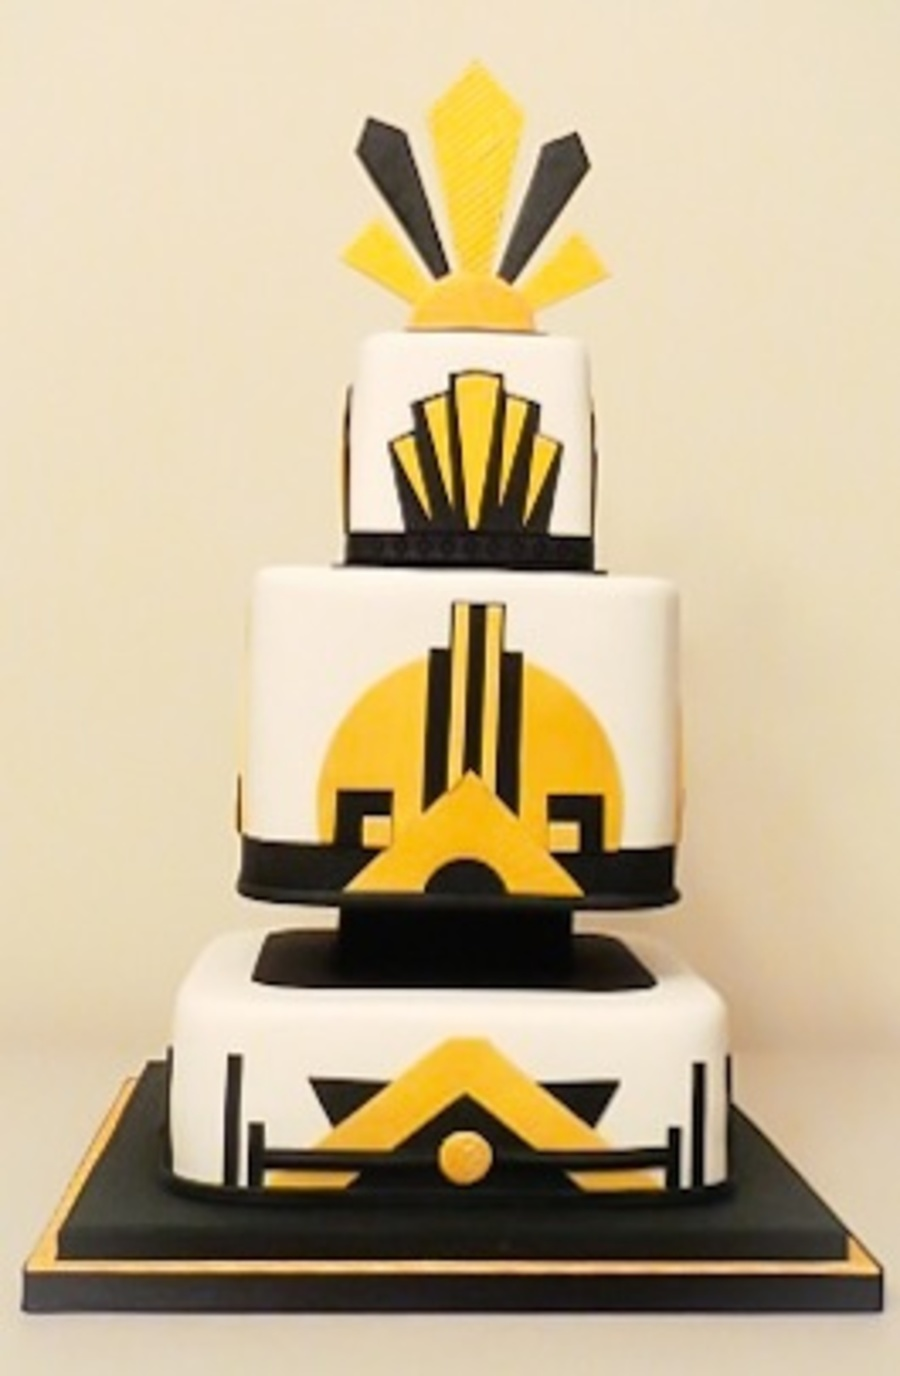 Art Deco Style Square Wedding Cake Rounded Edges - CakeCentral.com